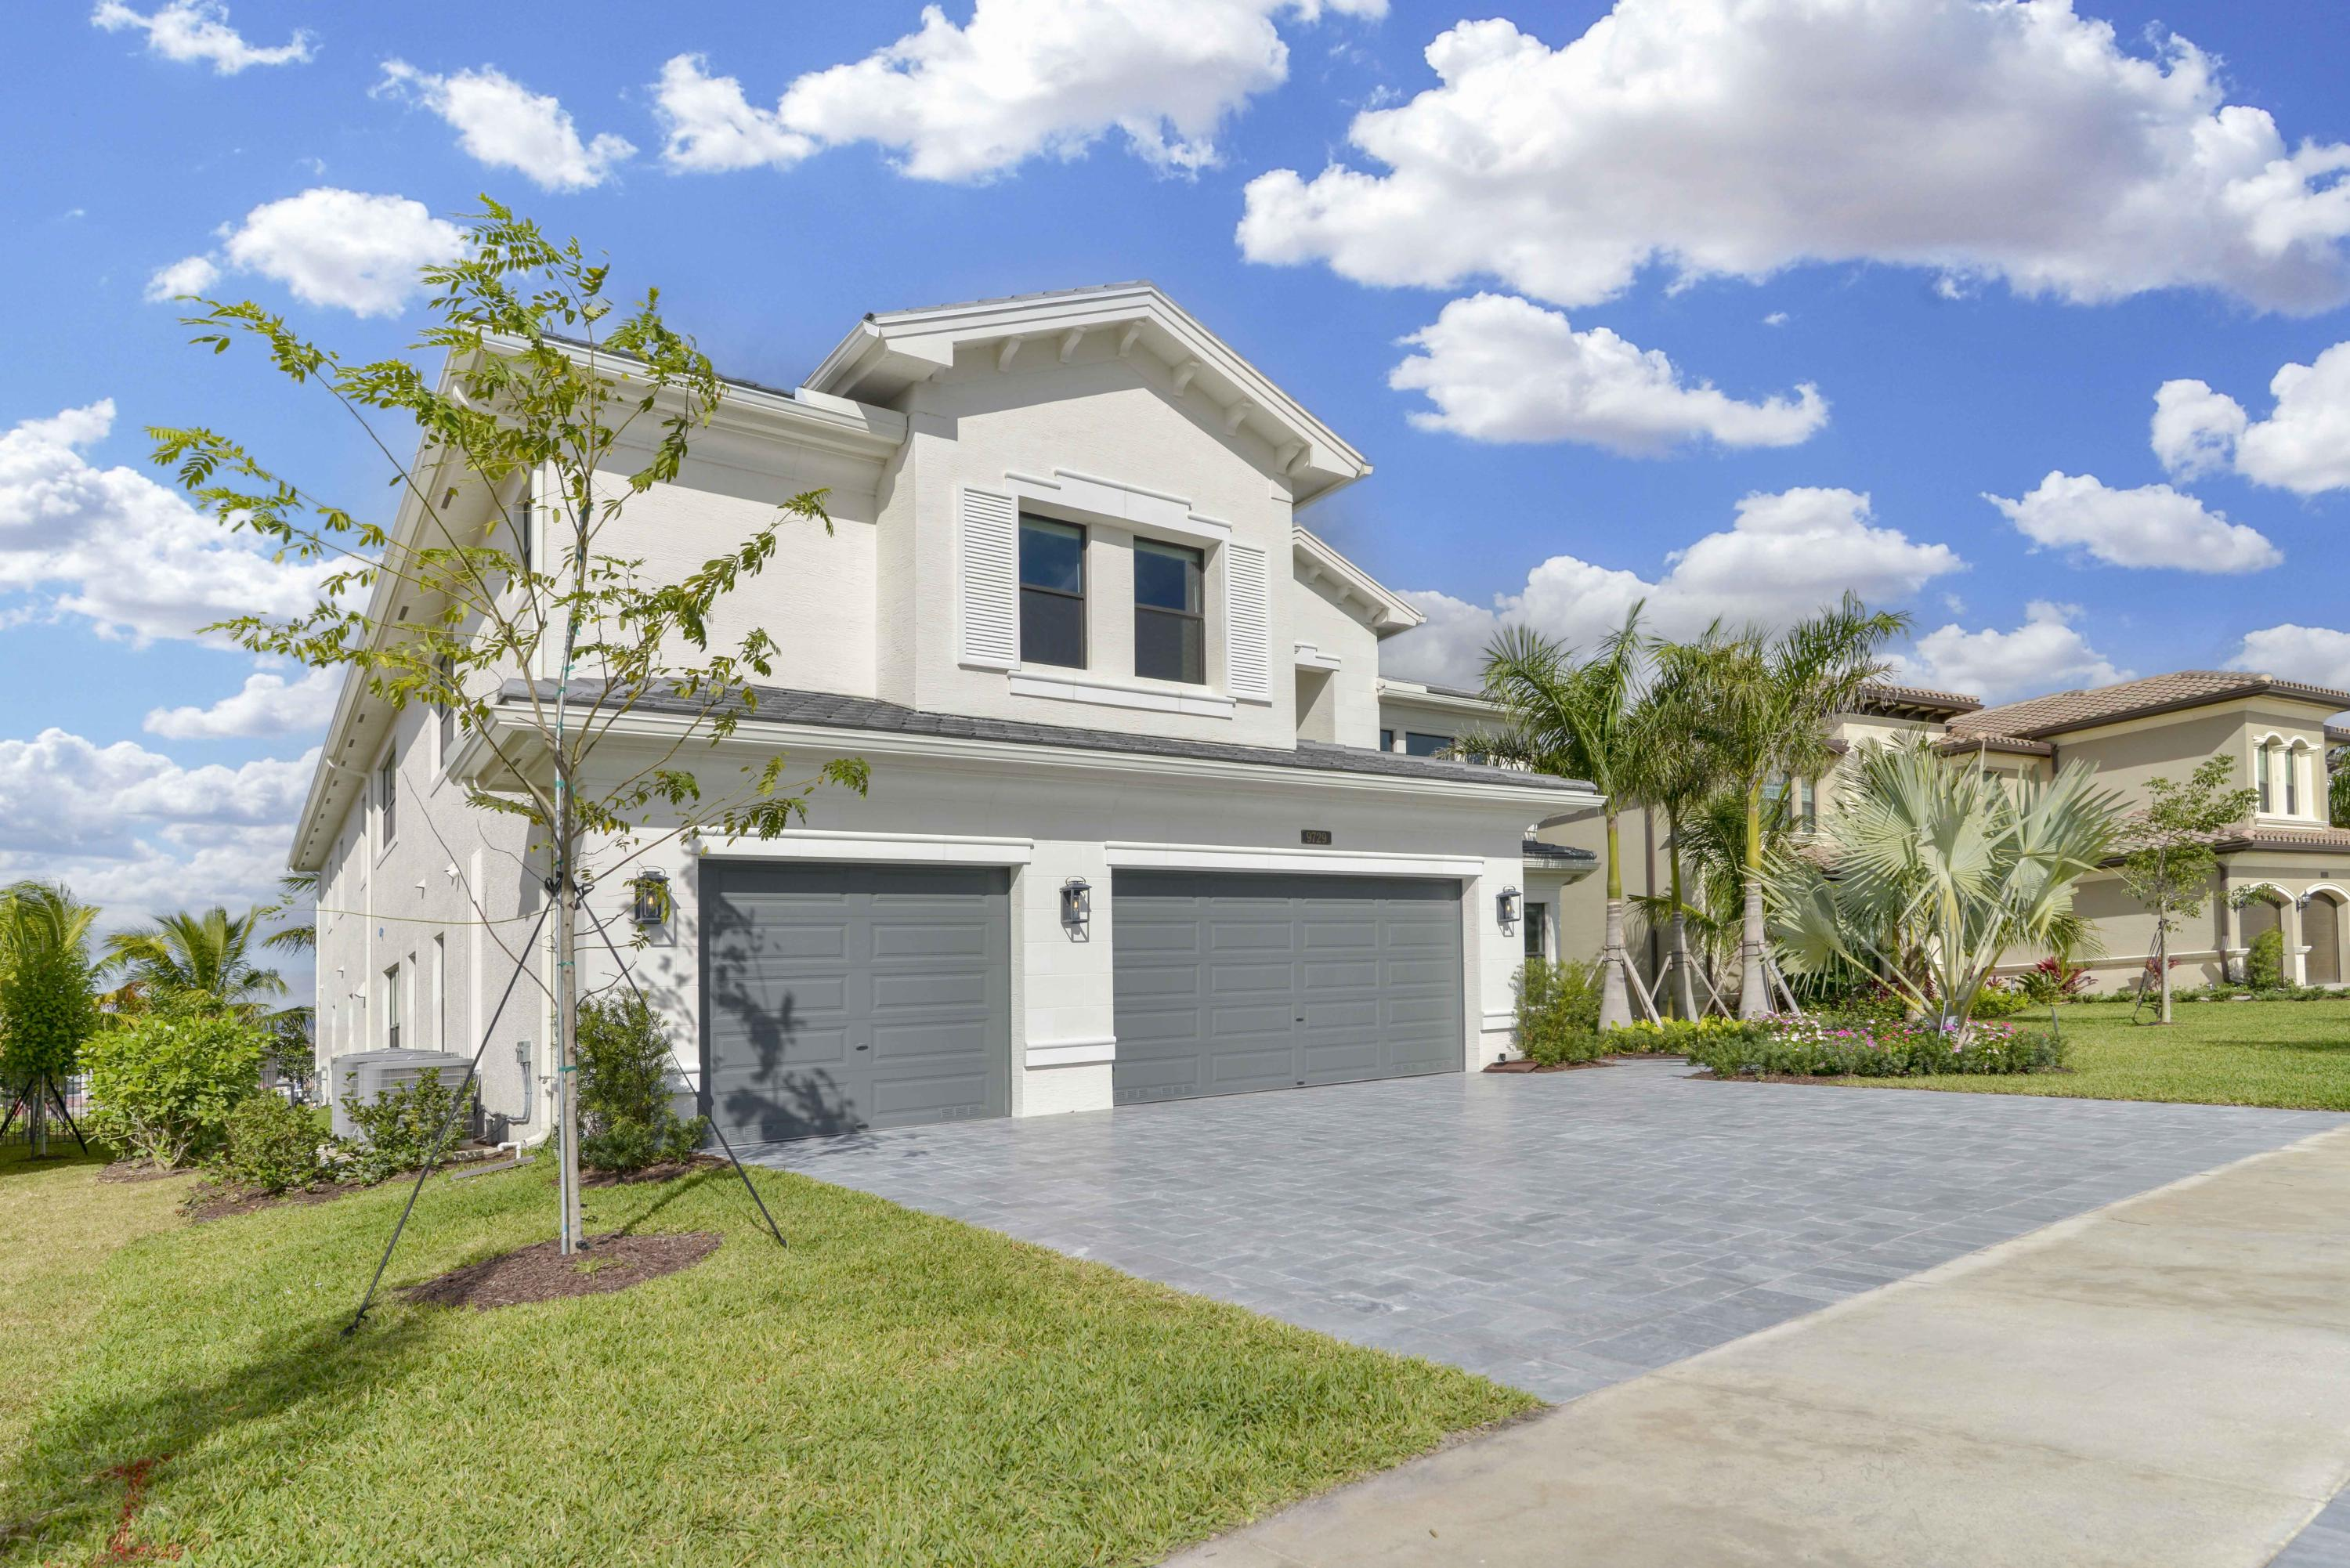 9729 Rennes Lane Delray Beach, FL 33446 small photo 52